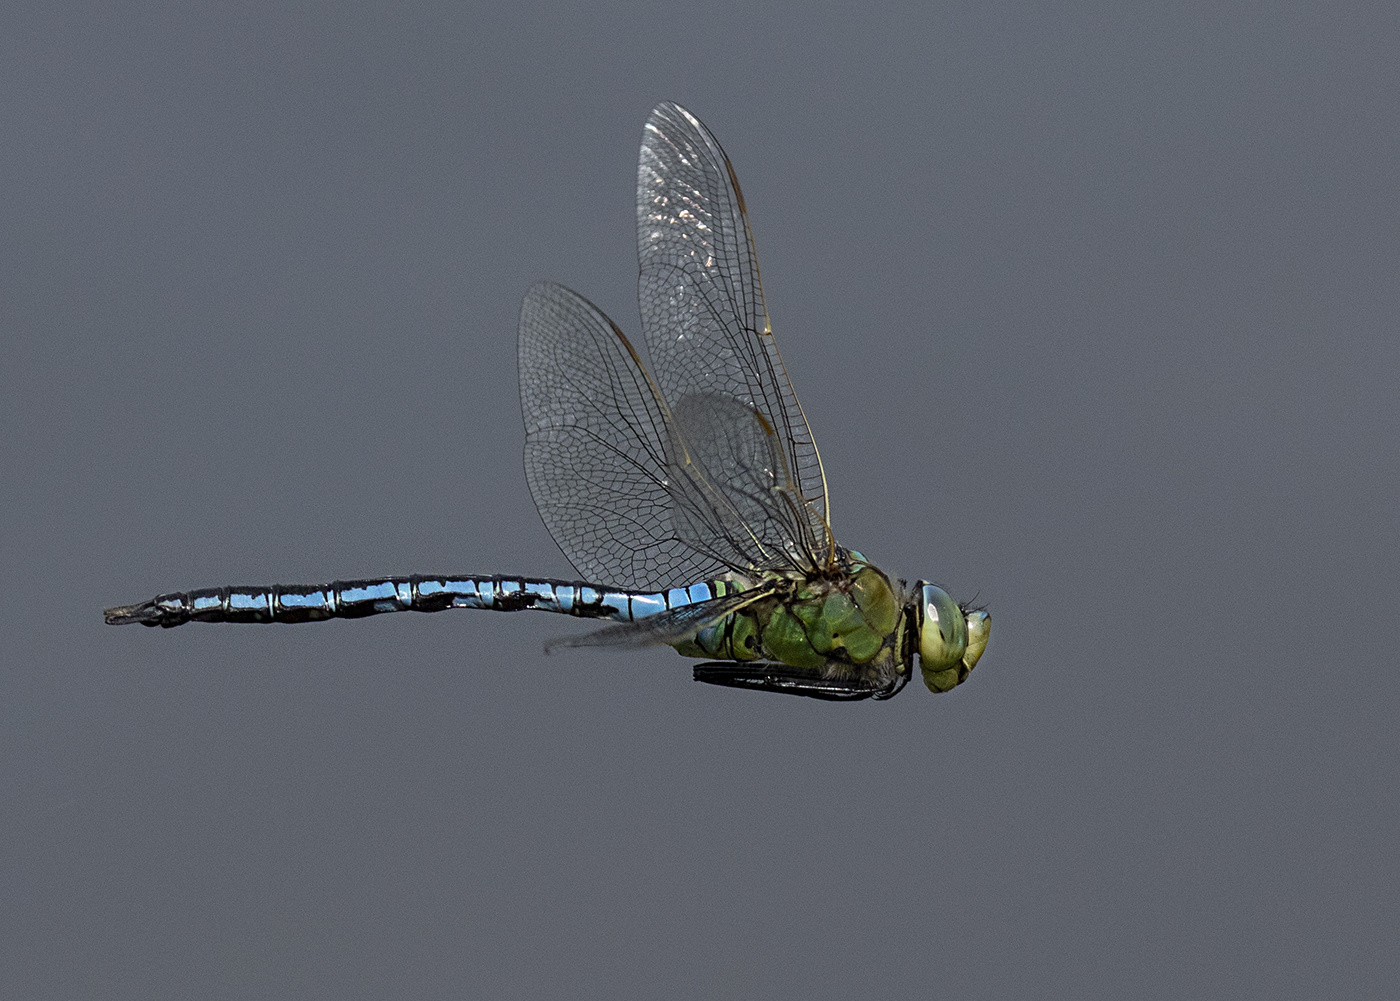 Gary-Howes-Dragonfly-in-Flight-9.5